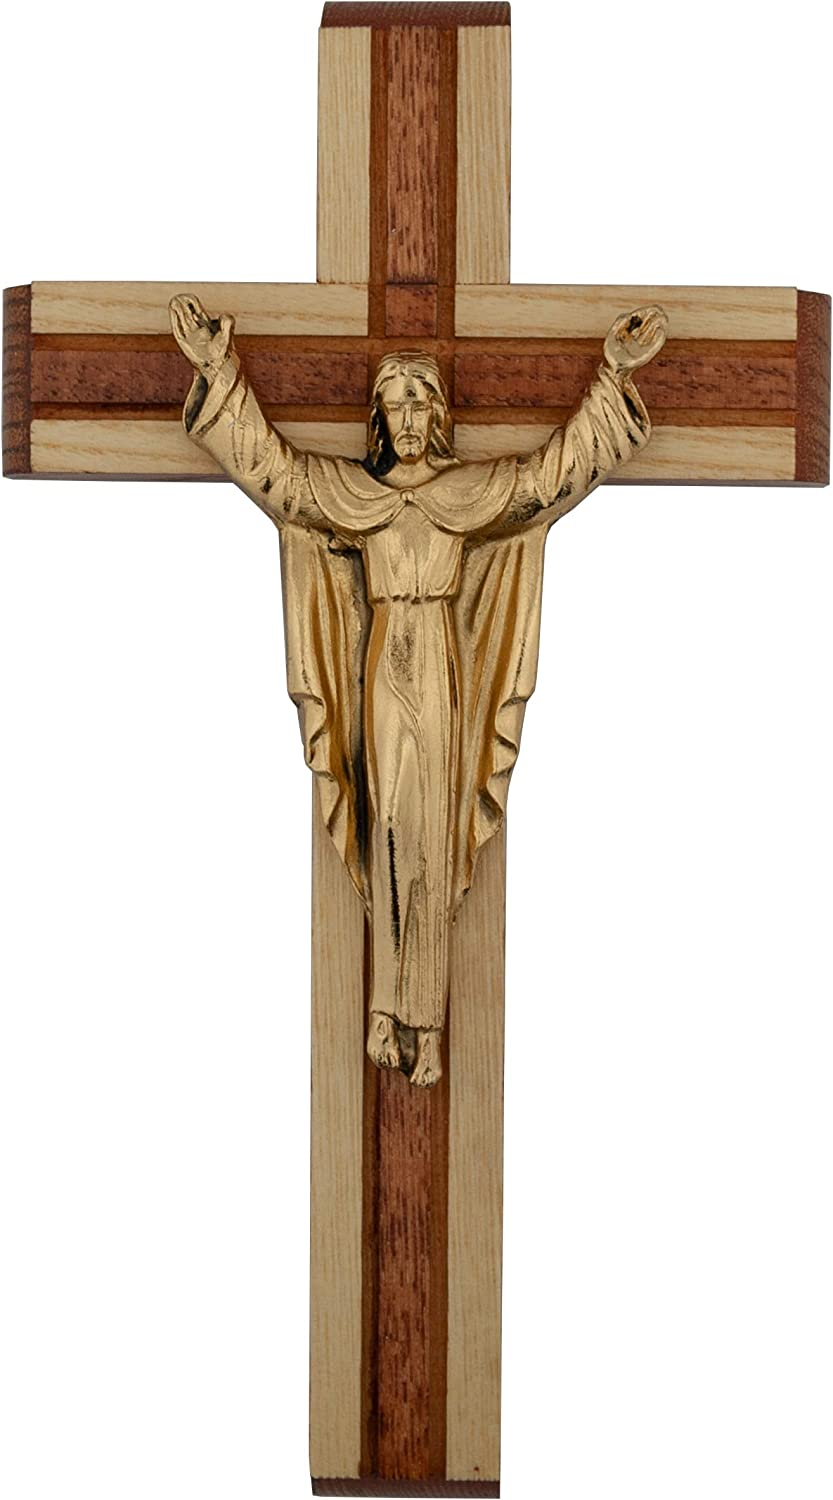 Wood Wall Cross | Gold-Tone Risen Jesus | Two-Tone Wood | Great Gift for First Communions, New Home and Weddings | Christian Catholic Home and Office Goods